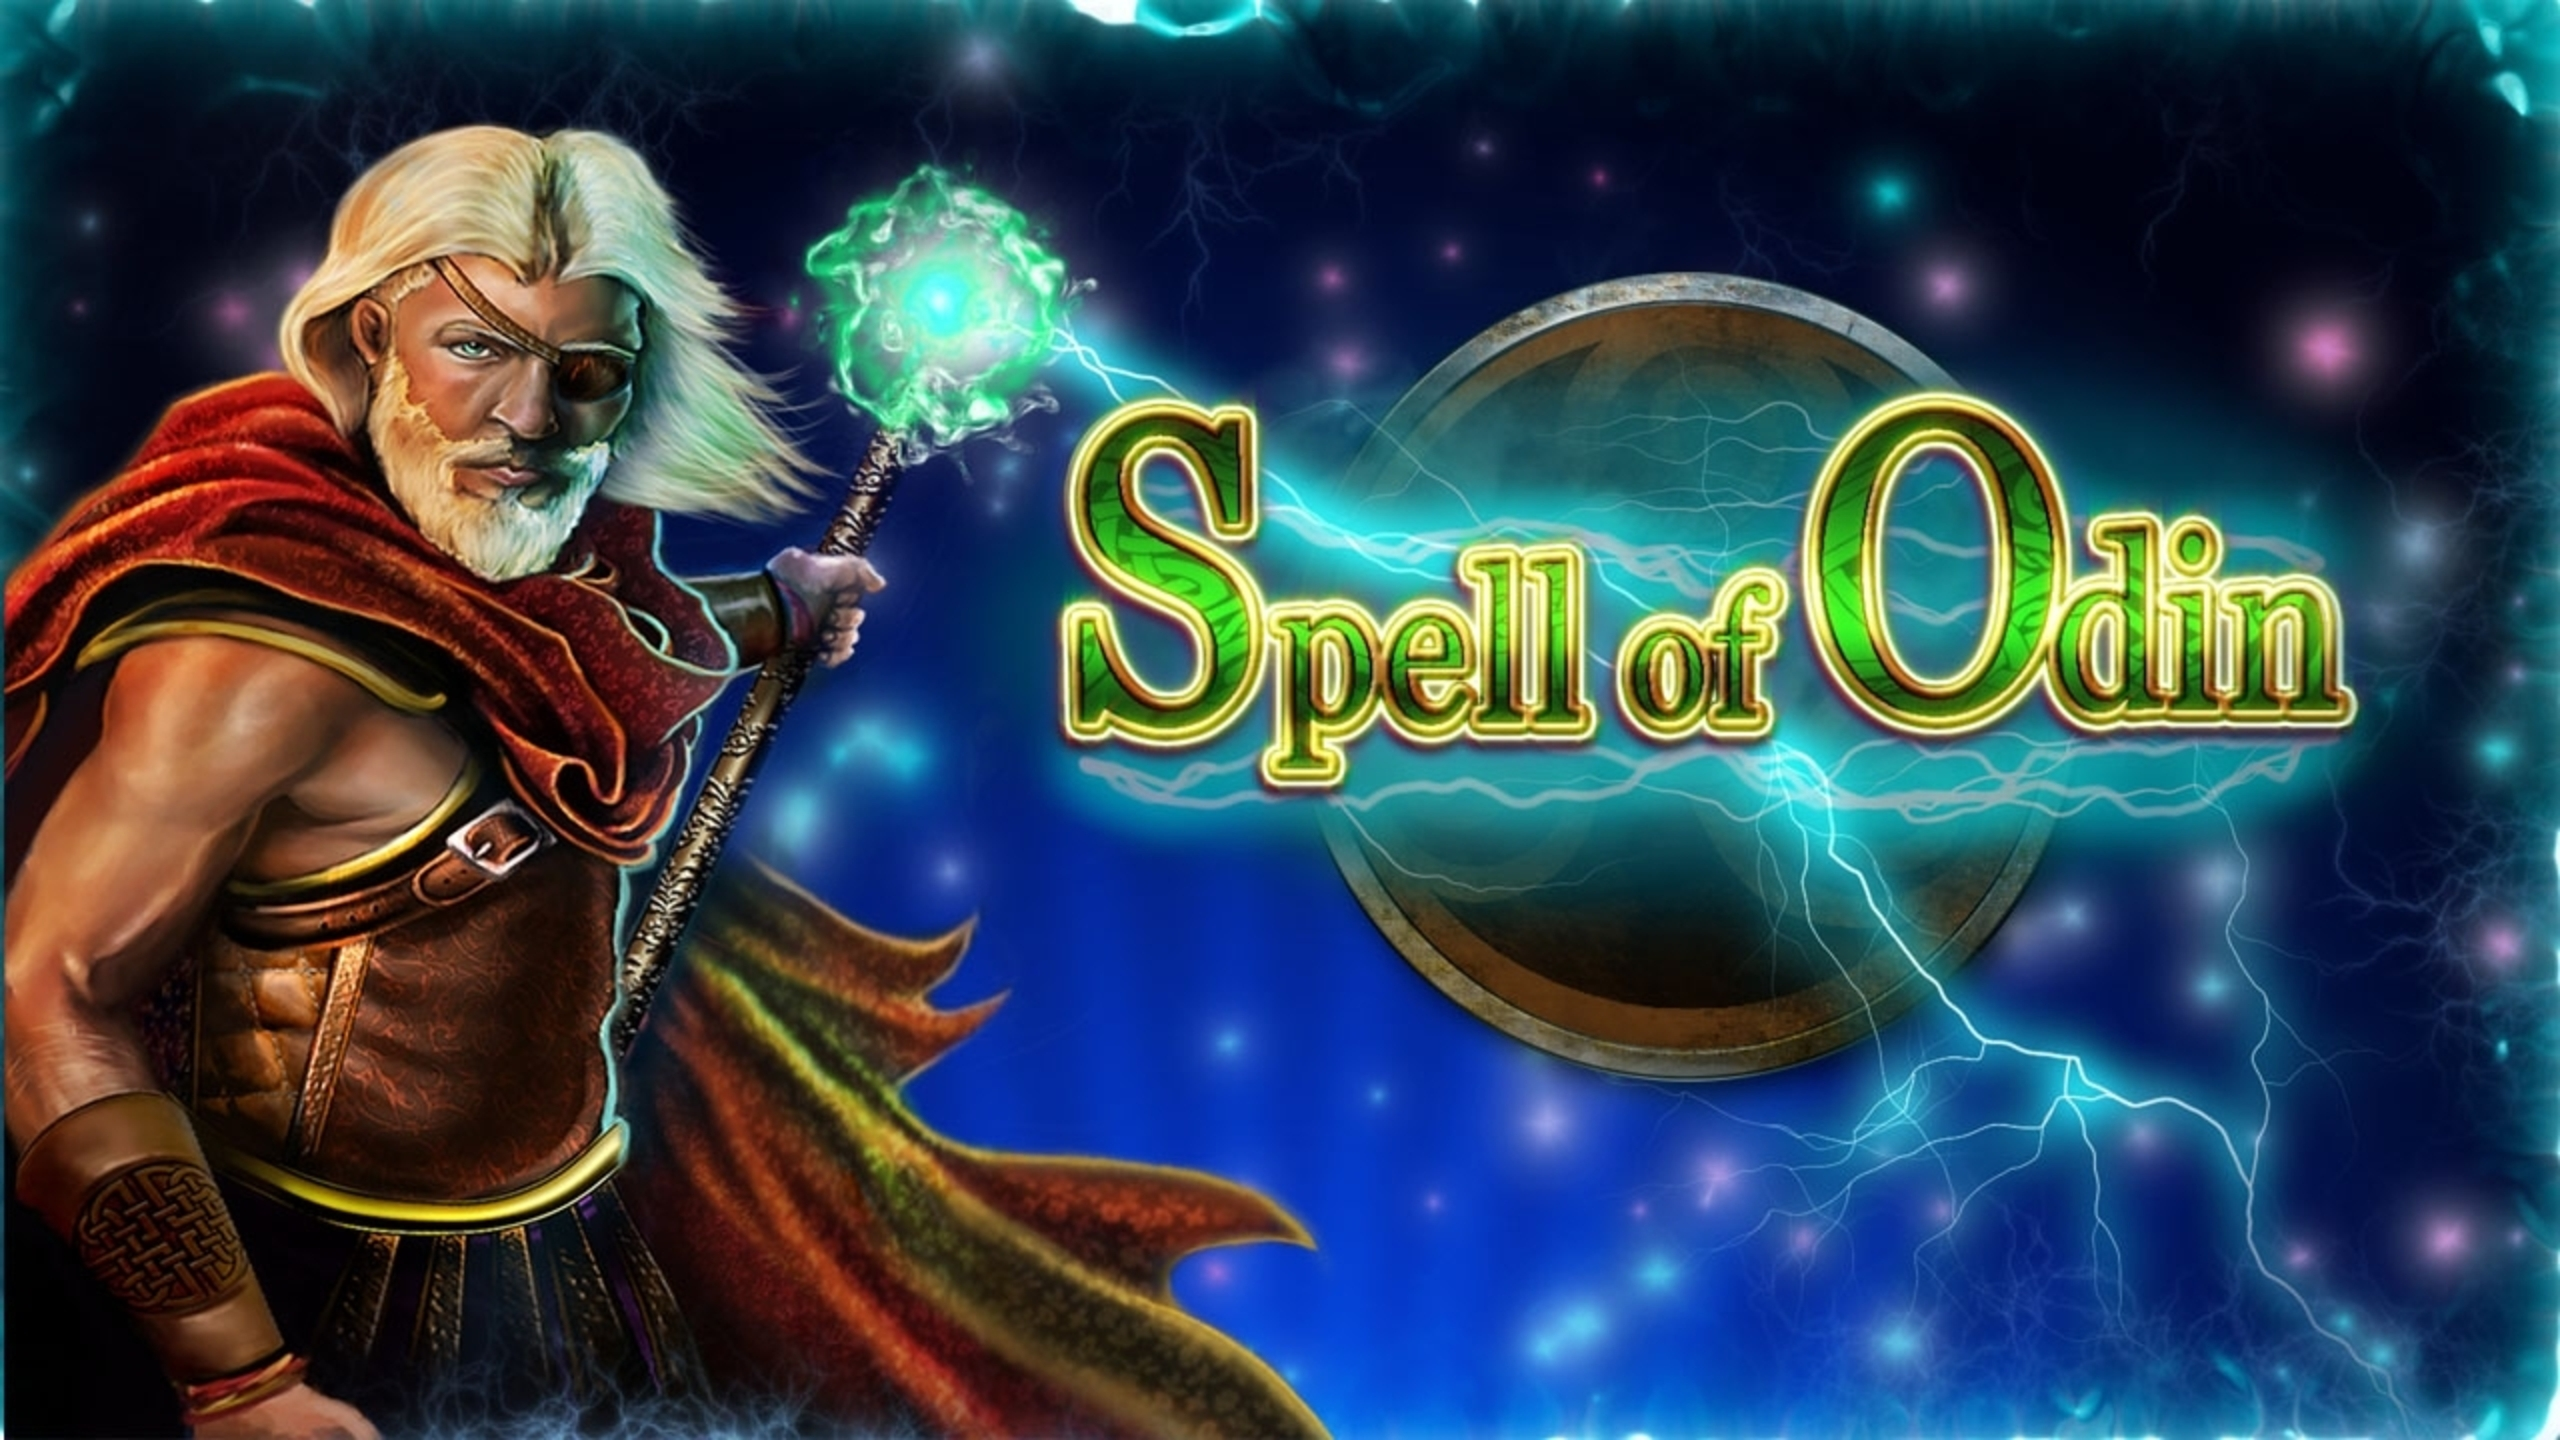 Se Spell of Odin Online Slot Demo Game, 2 By 2 Gaming